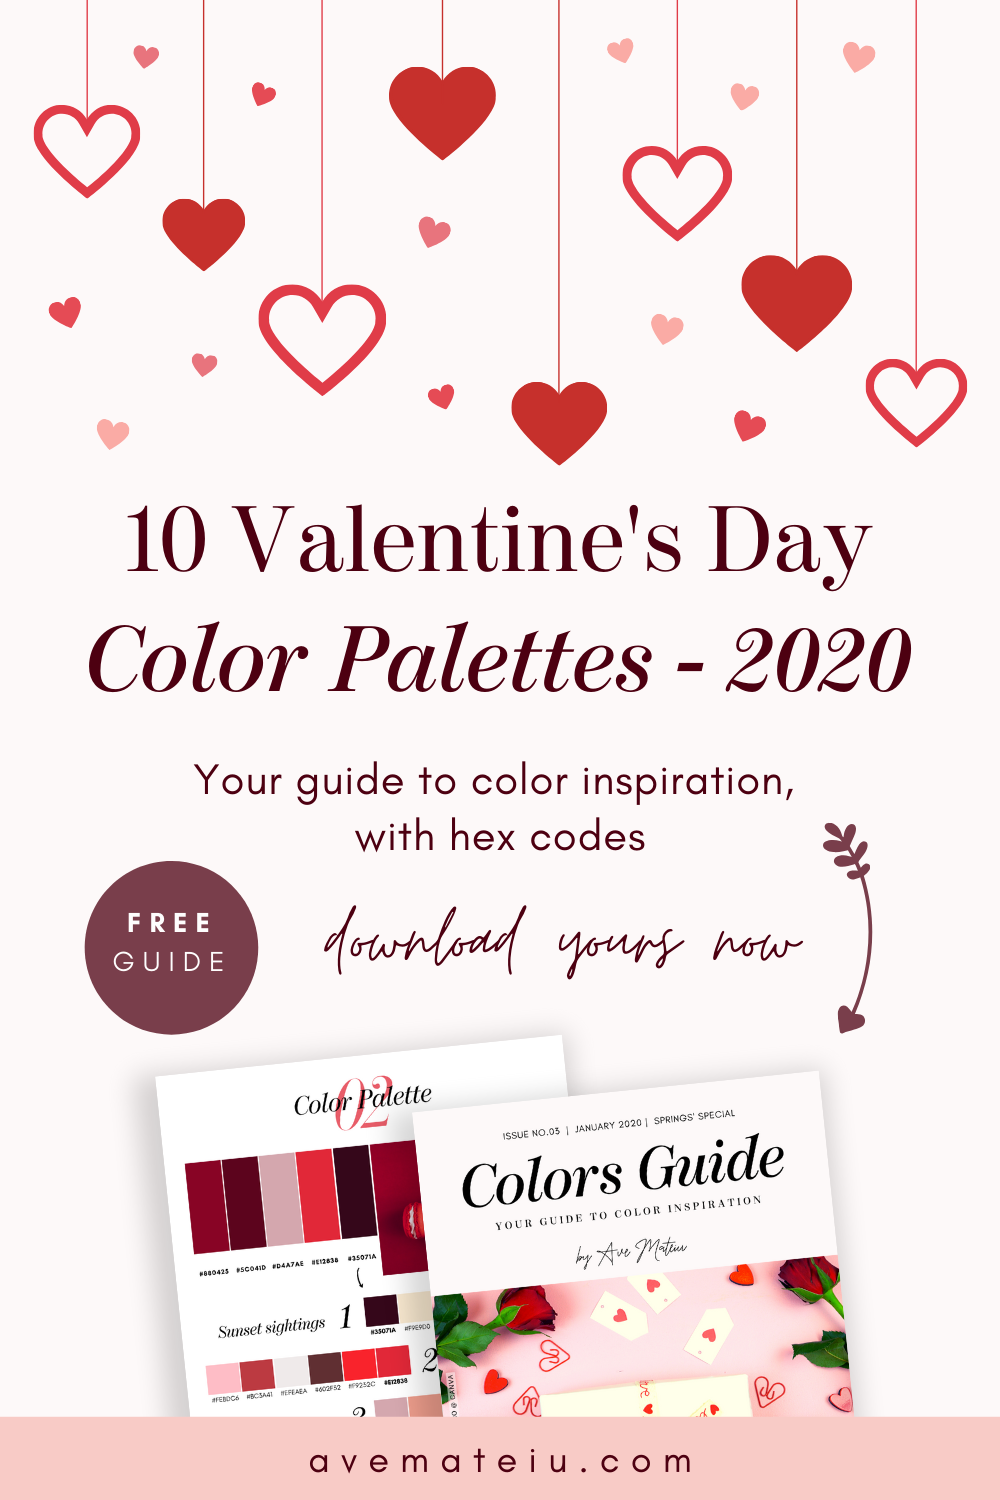 10 Valentine's Day Color Palettes plus FREE Colors Guide 2020 - Spring 2020, color palette, color palettes, colour palettes, color scheme, color inspiration, color combination, art tutorial, collage, digital art, canvas painting, wall art, home painting, photography, weddings by color, inspiration, vintage, wallpaper, background, rustic, seasonal, season, natural, nature